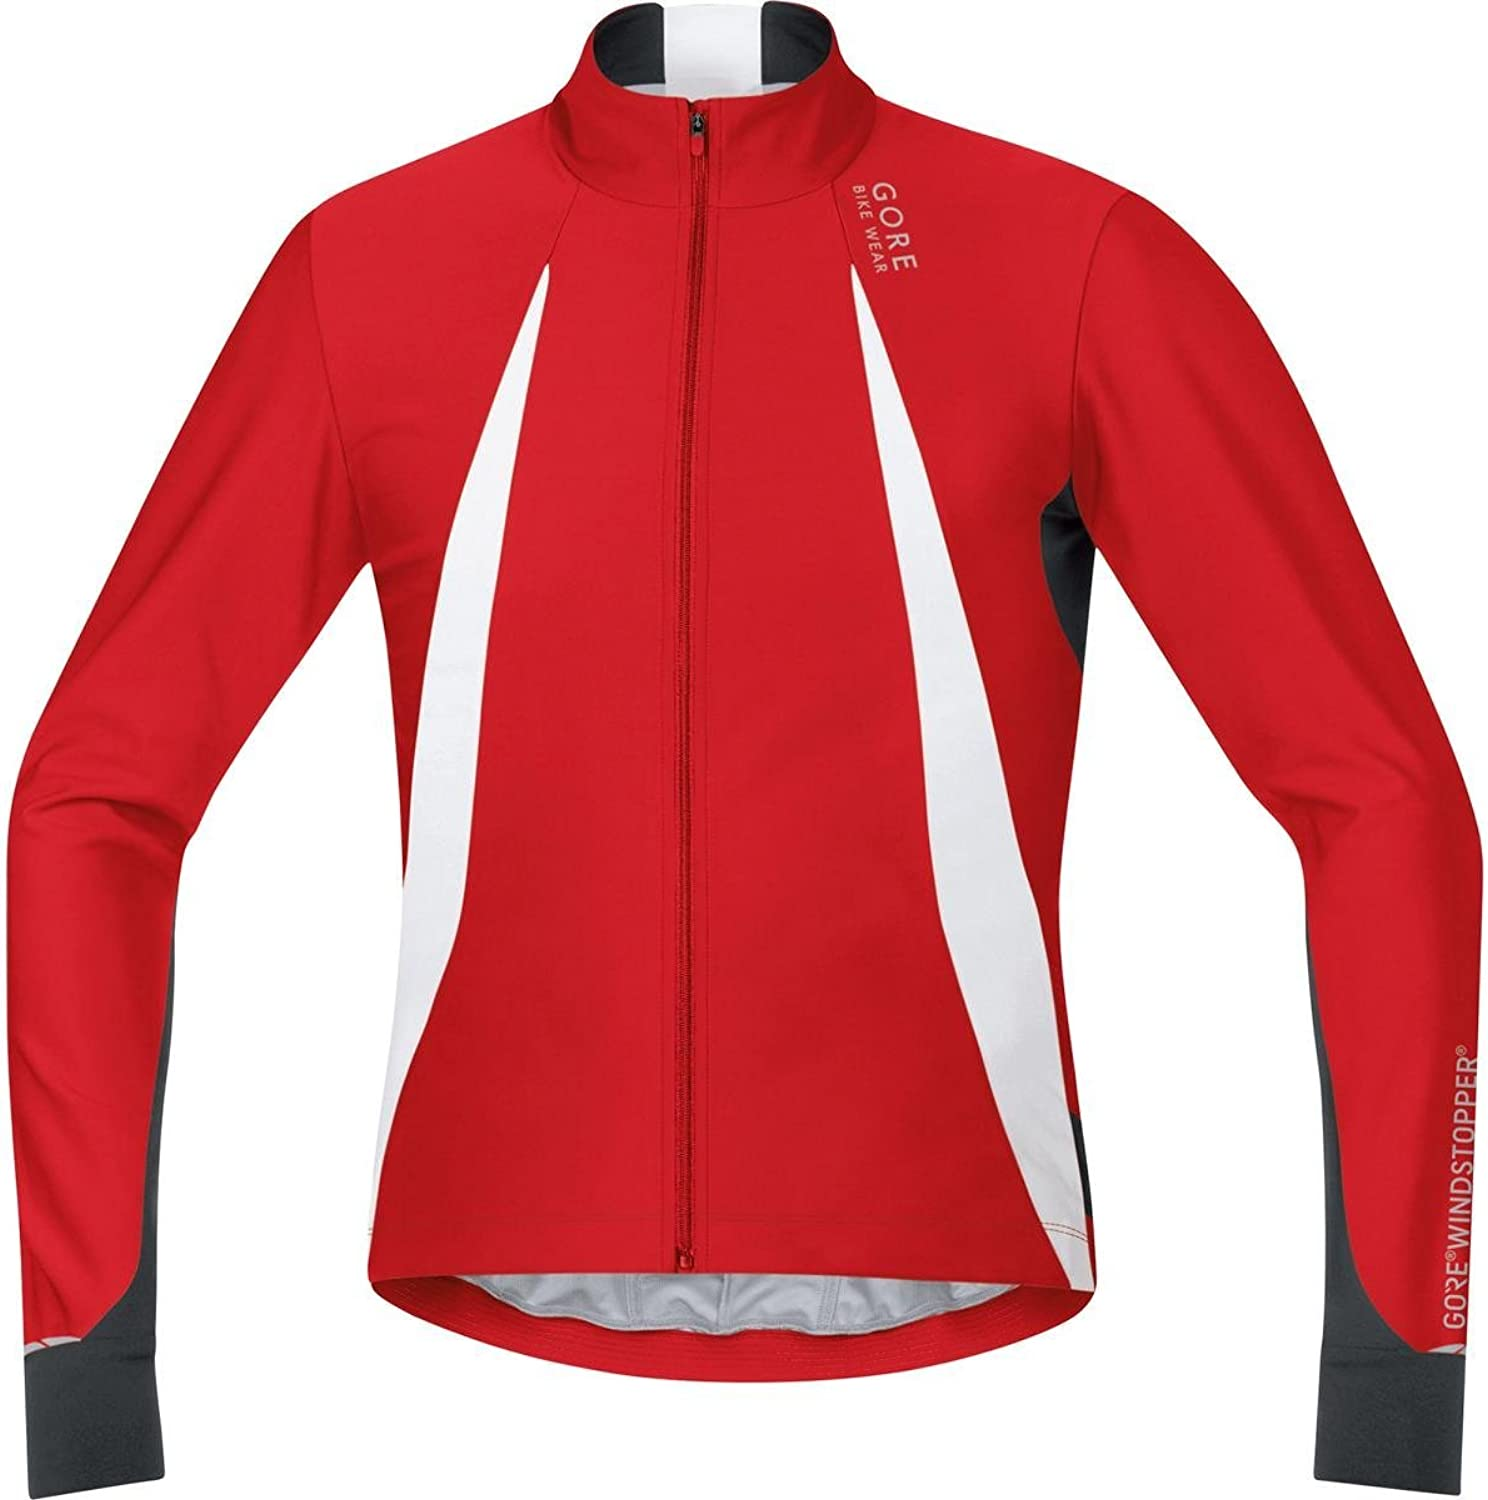 Gore Bike Wear Men′s Cyclist Jersey Long Sleeves Warm Gore Windstopper Oxygen Size XXL Red Black SWOXLM